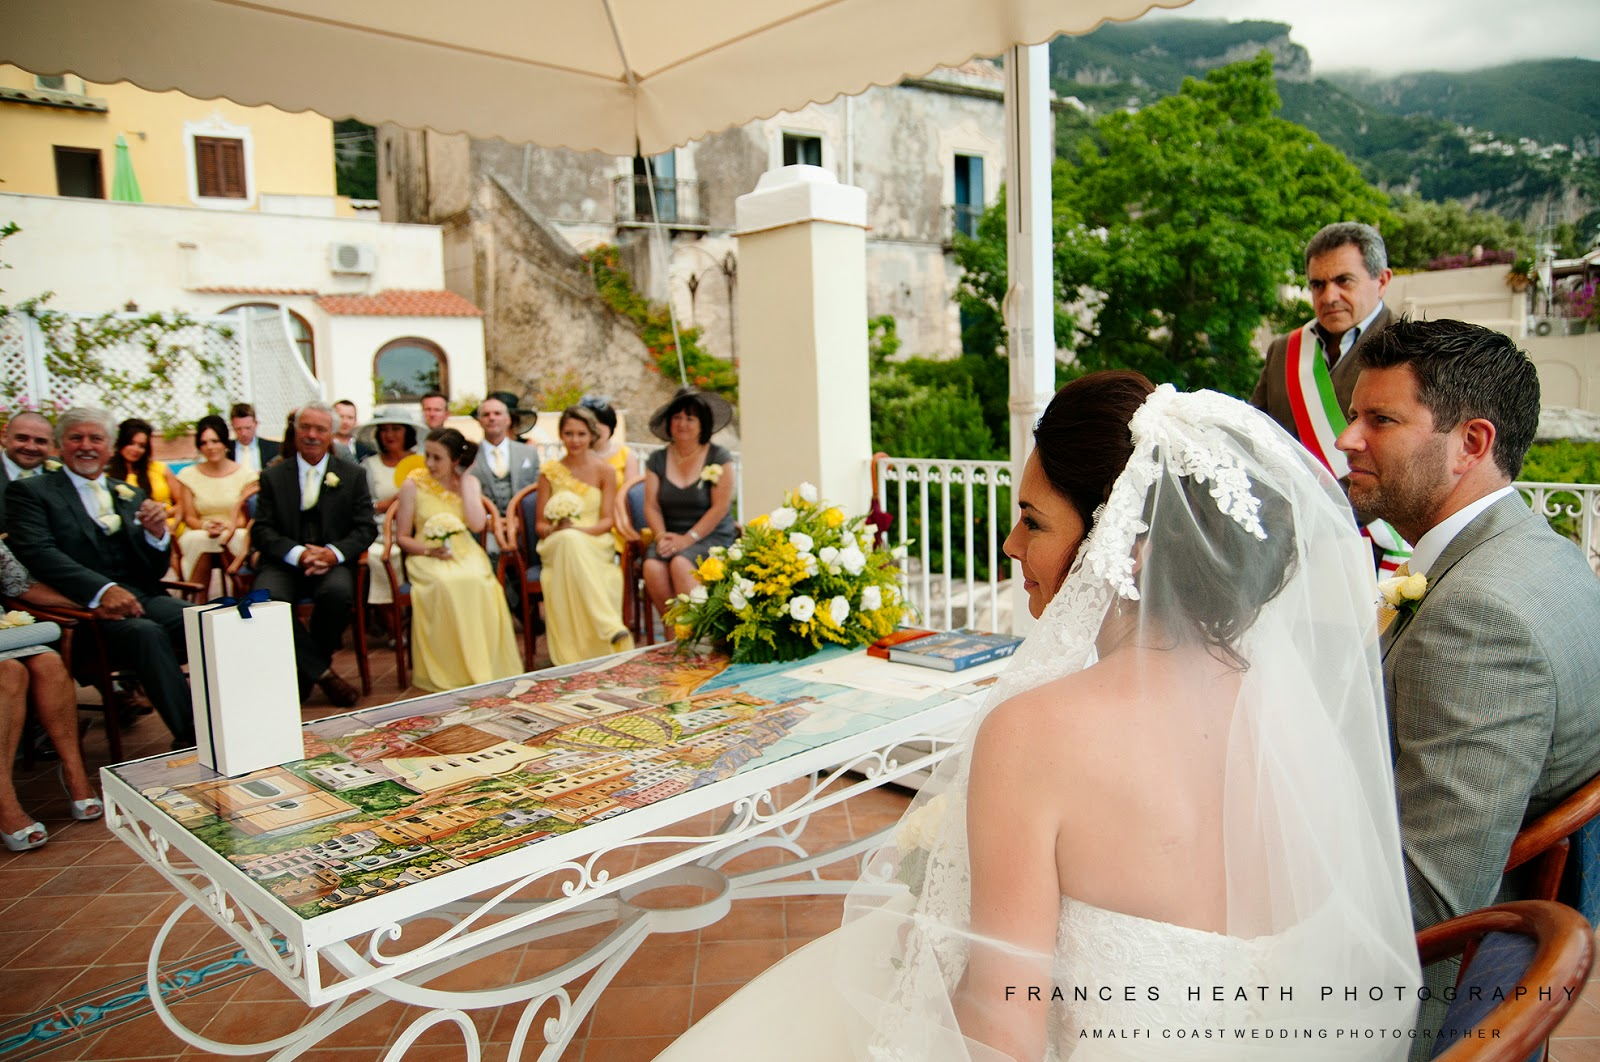 Civil wedding ceremony at Positano town hall